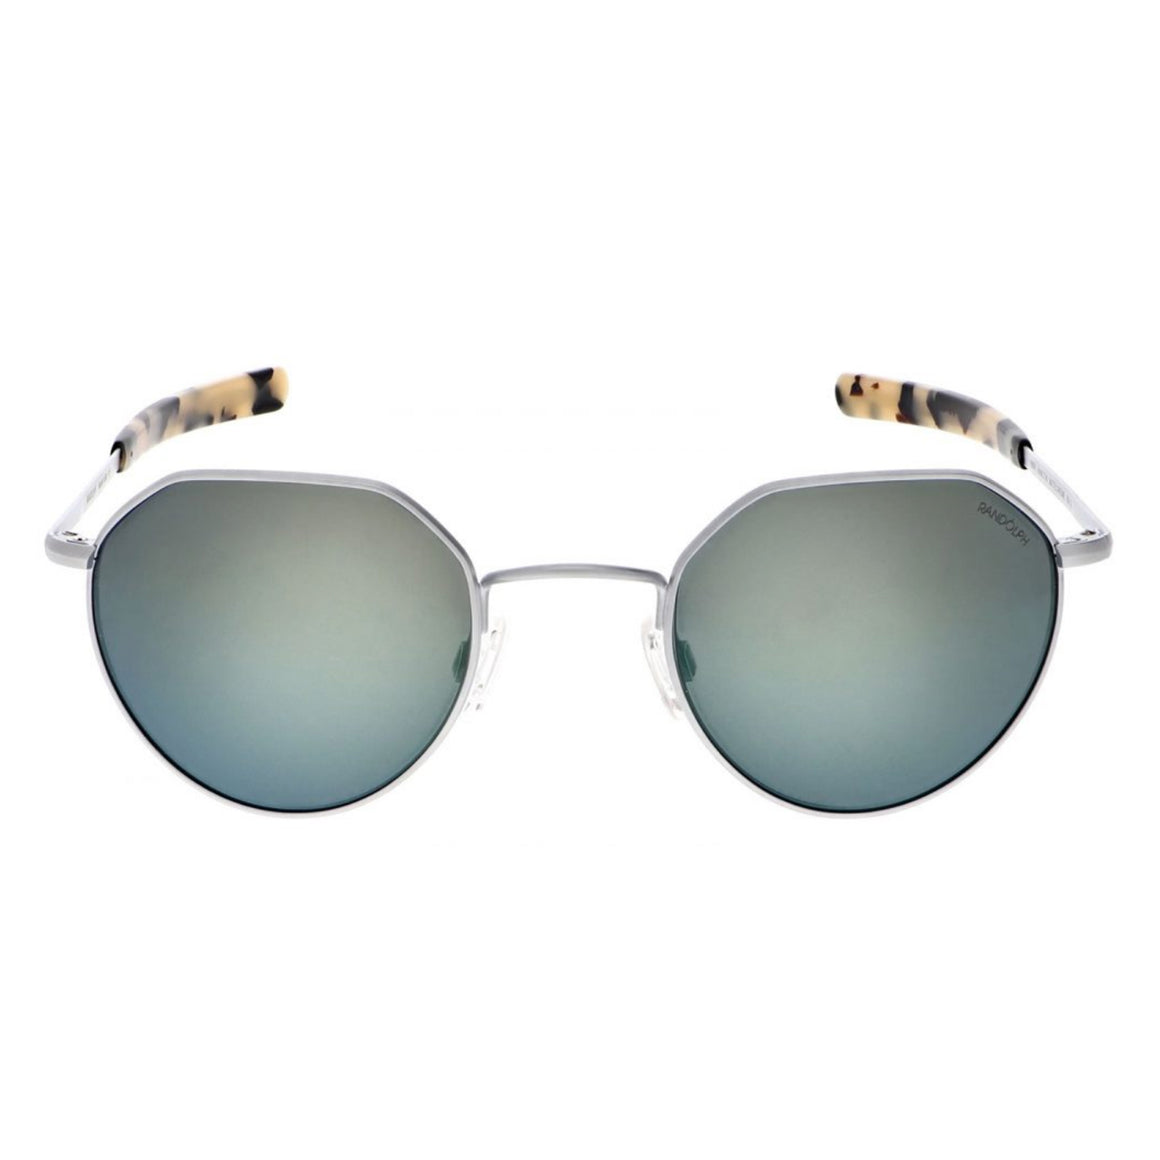 Hamilton Sunglasses, Matte Chrome Frames with Acadian Lenses by Randolph - Talisman Collection Fine Jewelers